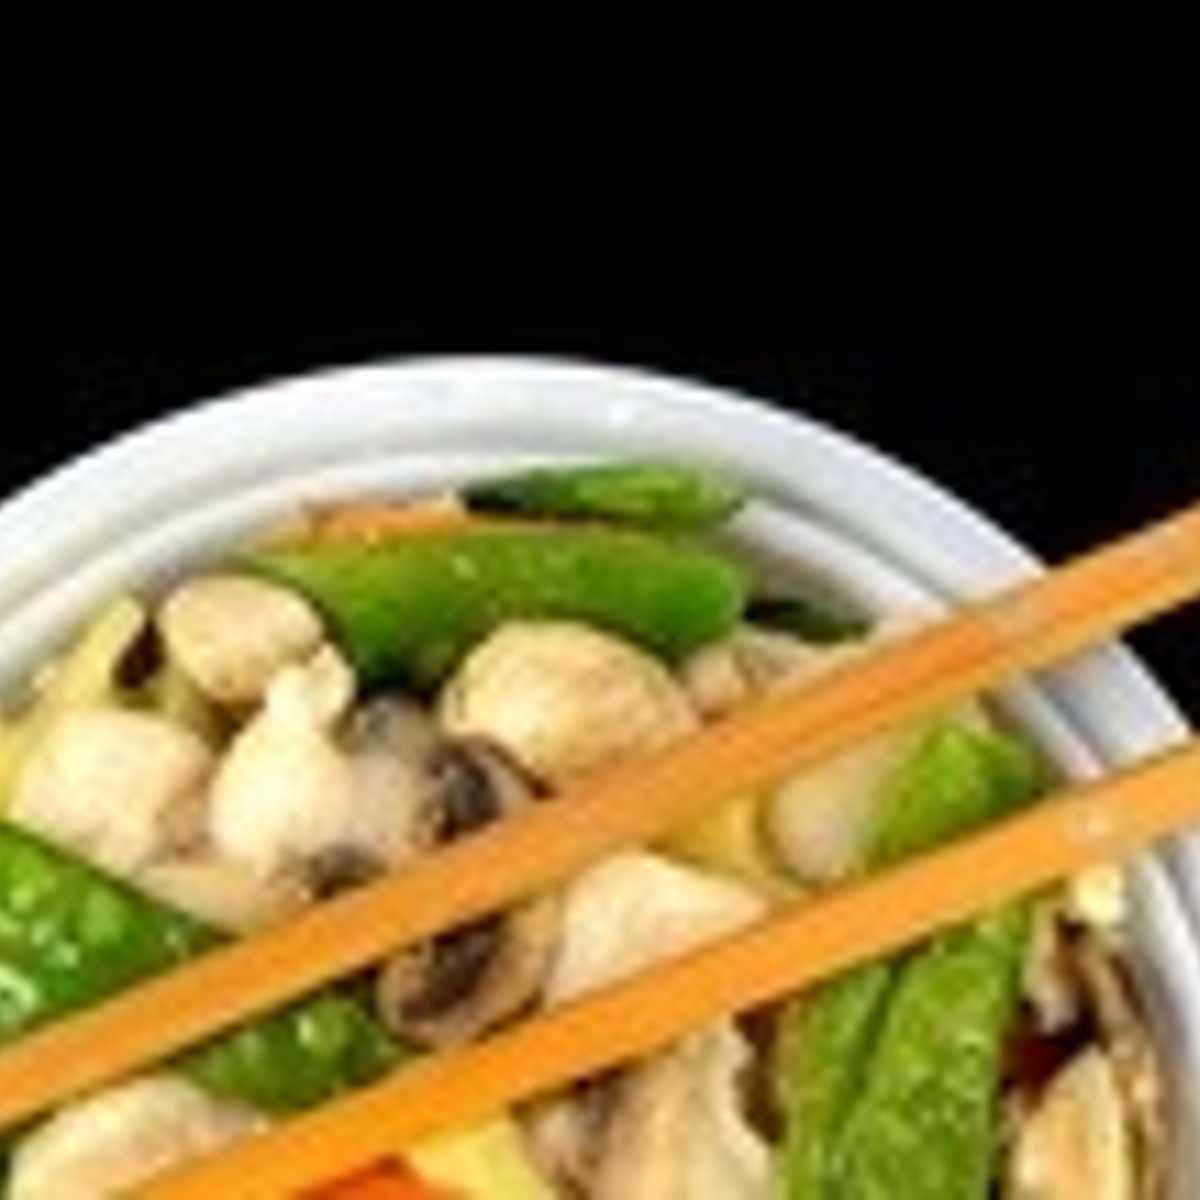 Wu S Kitchen Delivery Takeout 19324 Lighthouse Plaza Rehoboth Beach Menu Prices Doordash